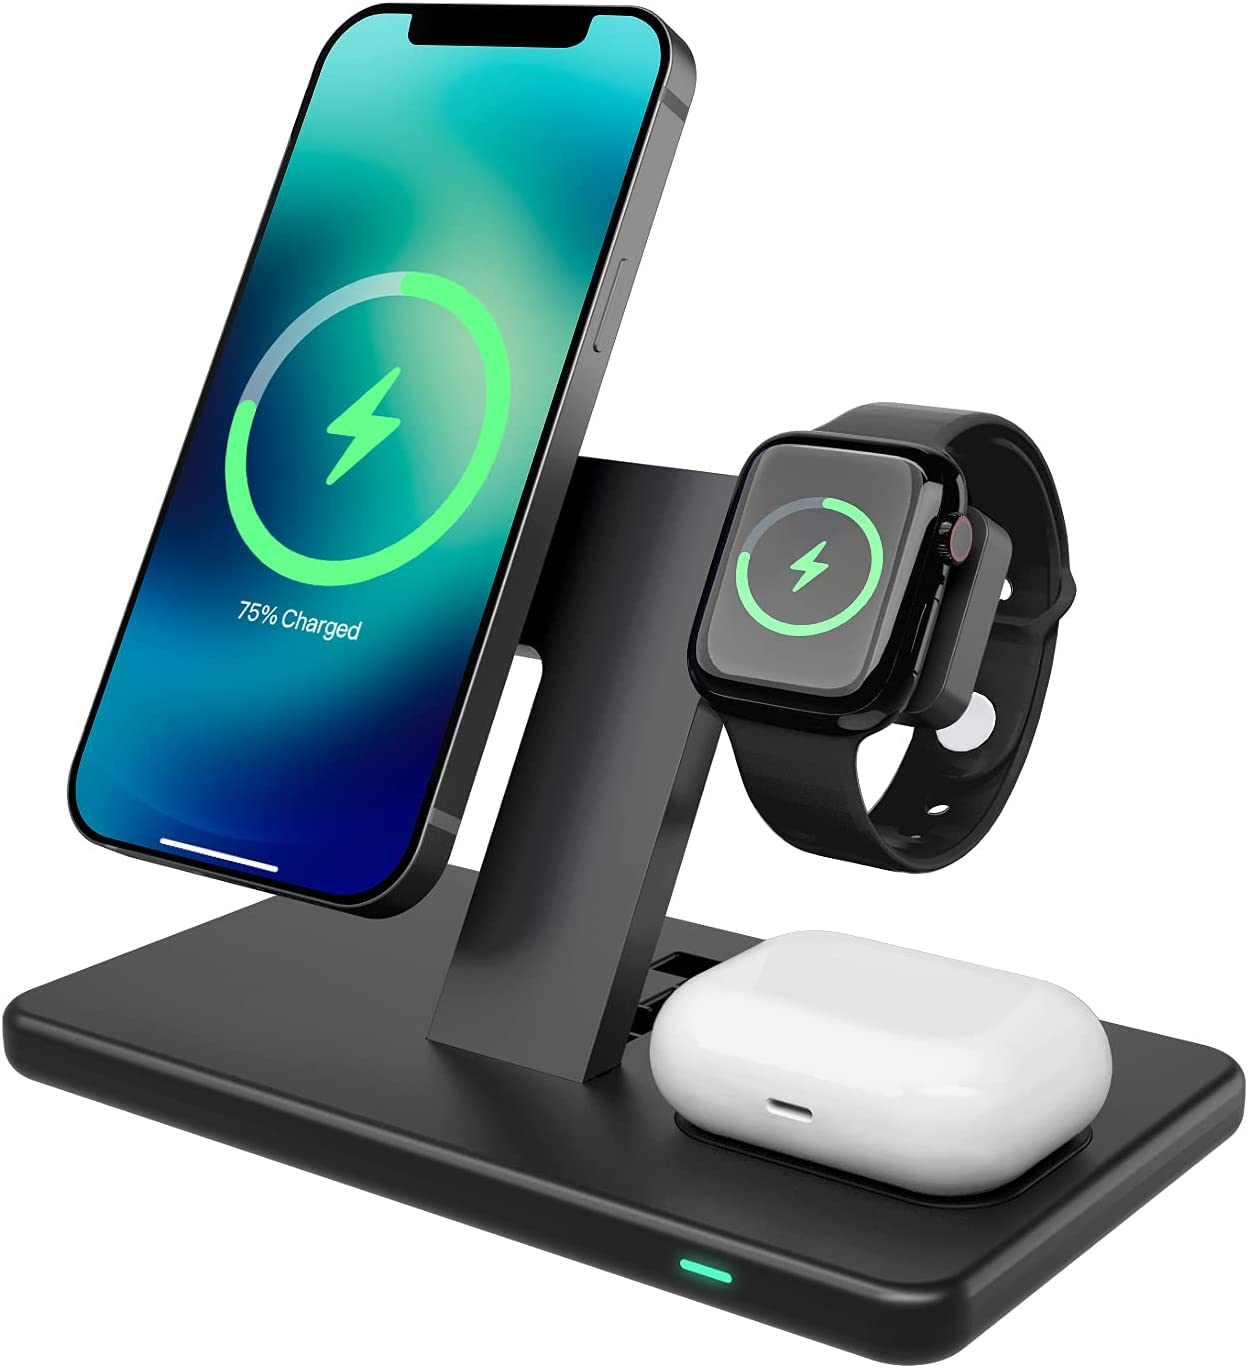 3-in-1 Magnetic Charging Station, Detachable Wireless Charger Stand for iPhone 12/12 Pro/12 Pro Max /12 Mini, iWatch 6/ SE/5/4/ 3/2/1, AirPods 2/ Pro, Compatible with MagSafe Cases(with QC3.0 Adapter)